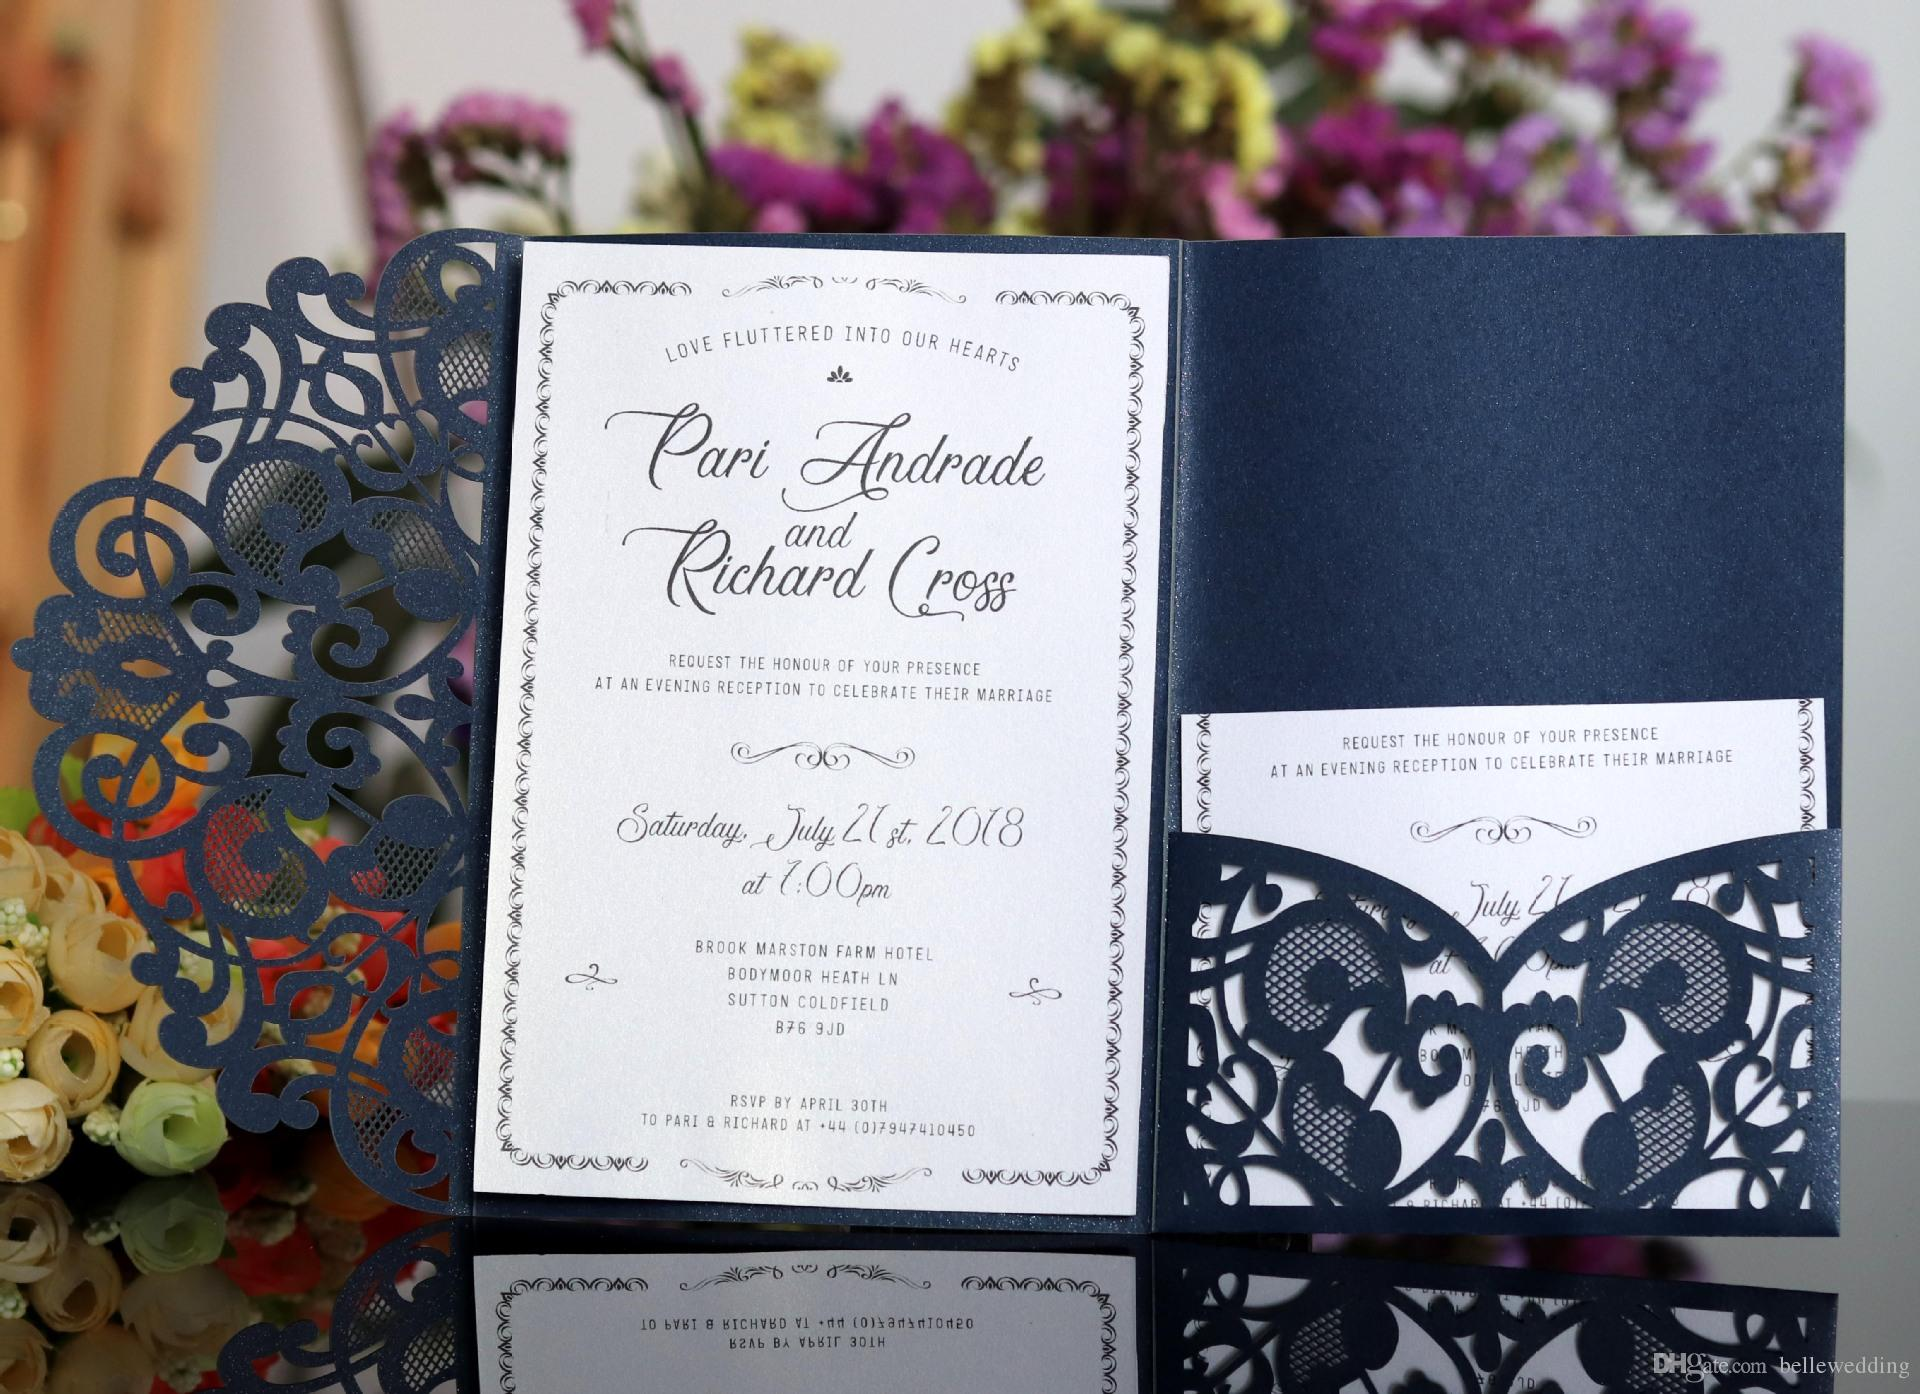 Personalized Wedding Invitations.Laser Cut Wedding Invitations Oem In 41 Colors Customized Hollow Folding Personalized Wedding Invitation Cards Bw Hk119